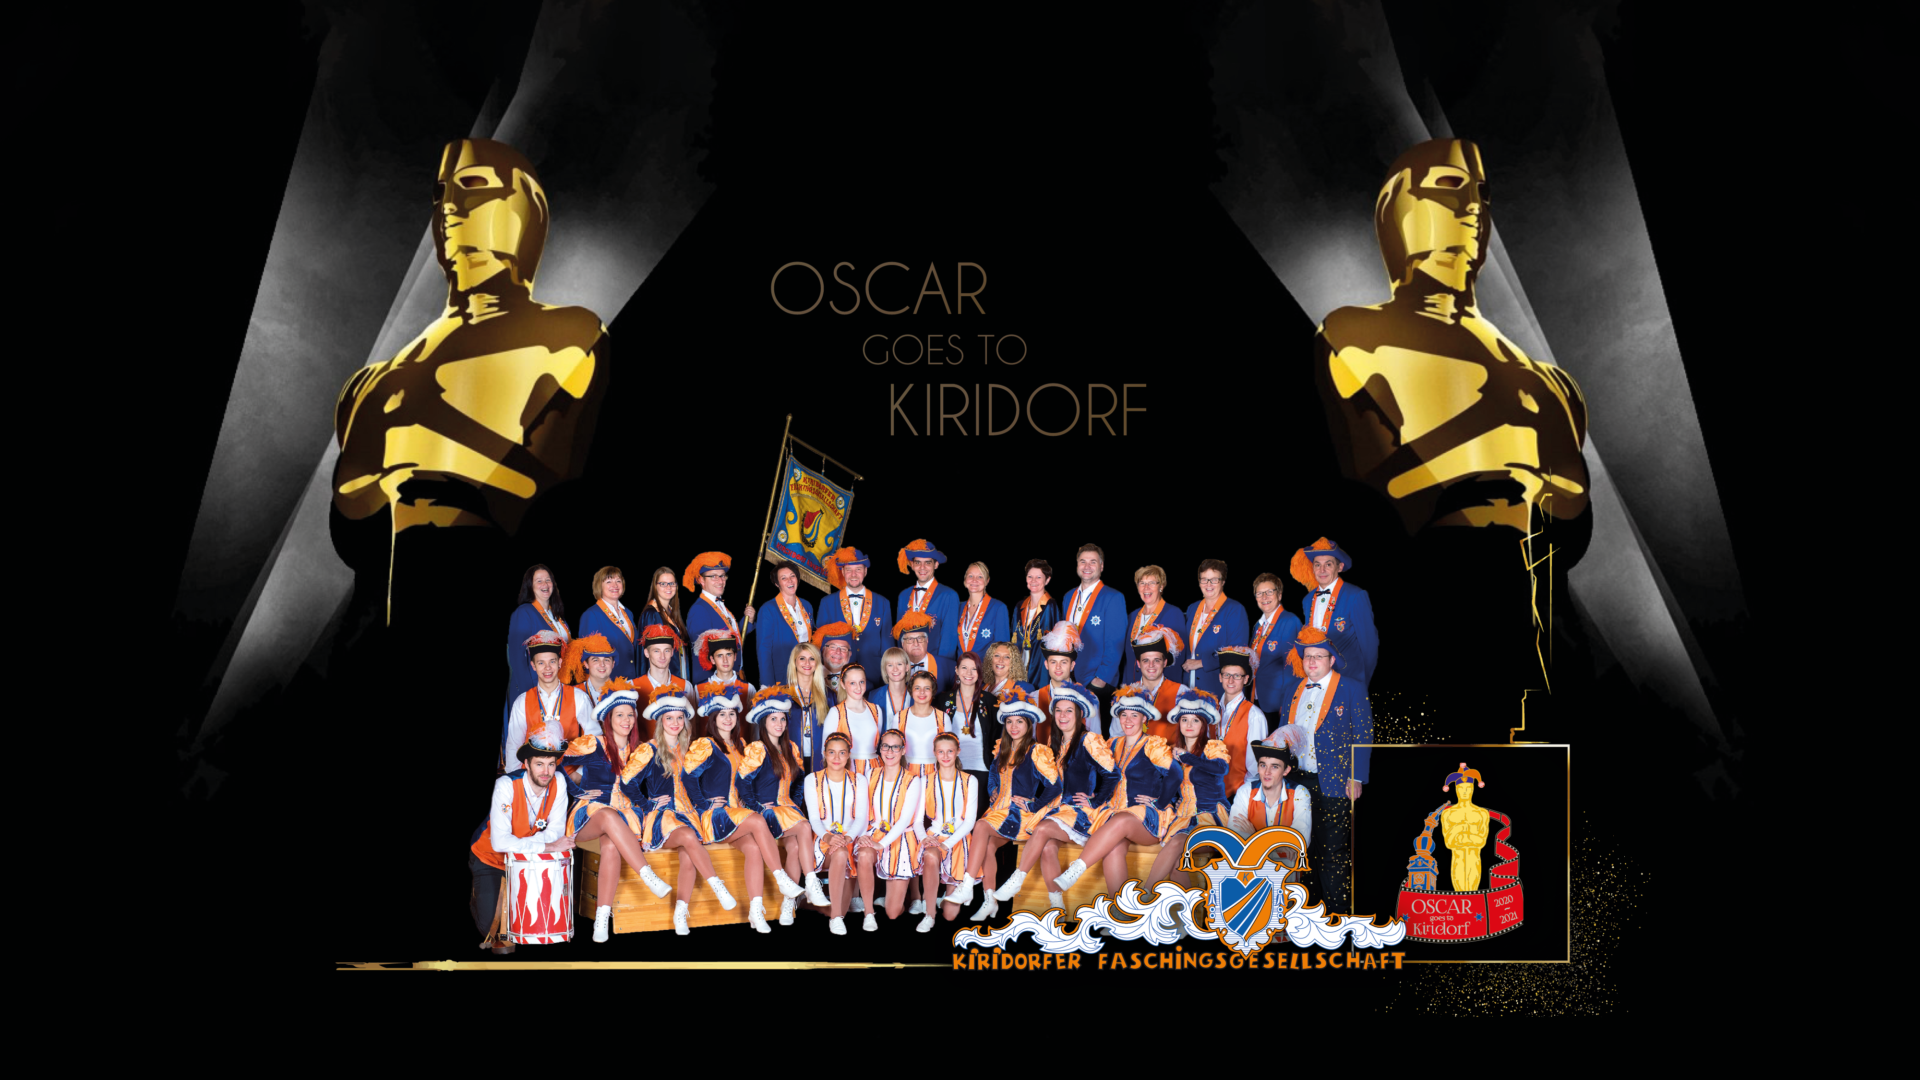 Oscar goes to Kiridorf